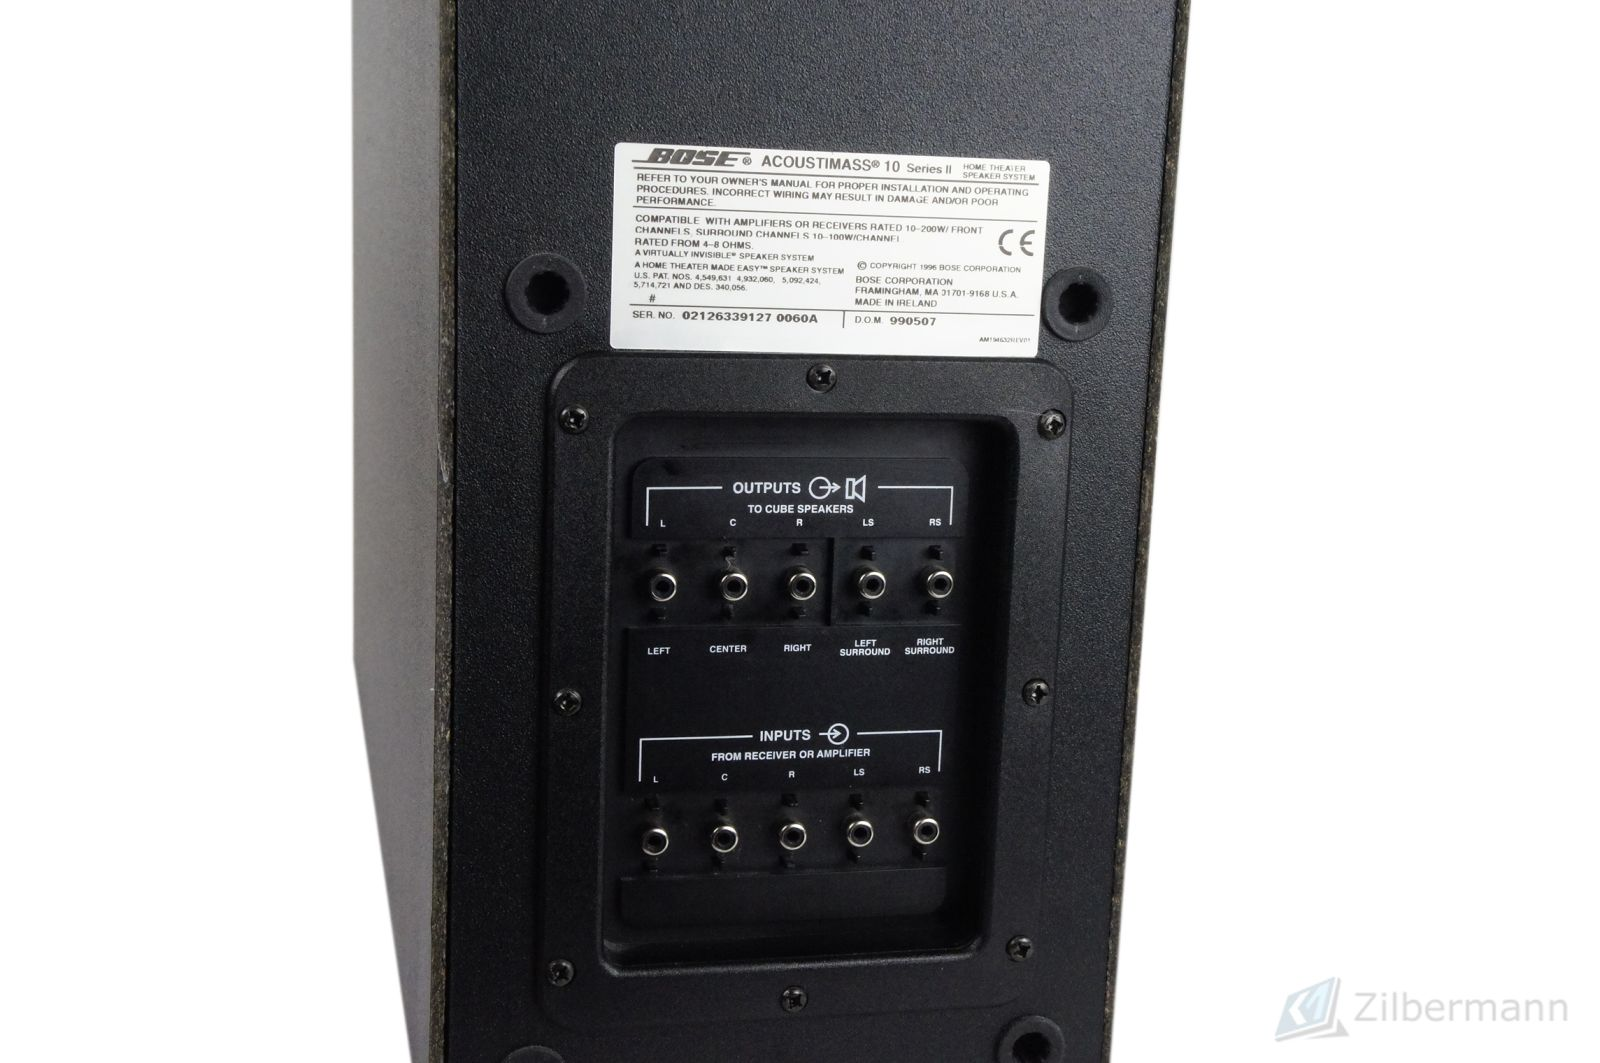 Bose_Acoustimass_10_Series_II_5.1_Subwoofer_06